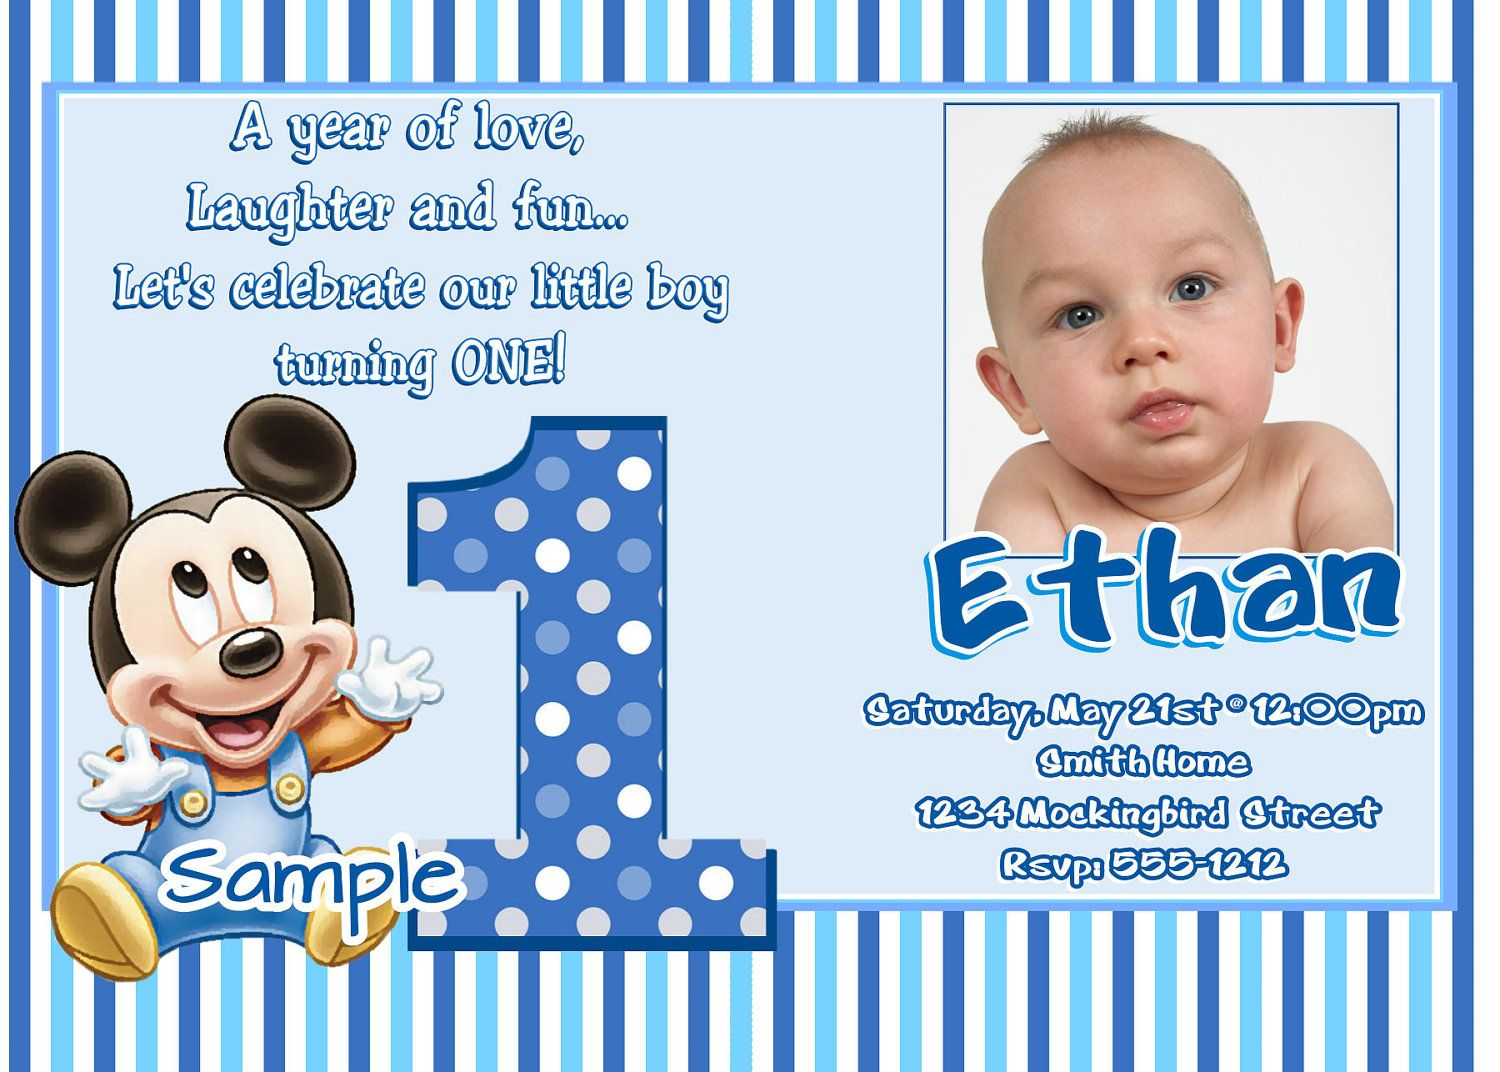 Free St Birthday Invitation Maker Invitation Sample Pinterest - Birthday invitation for baby